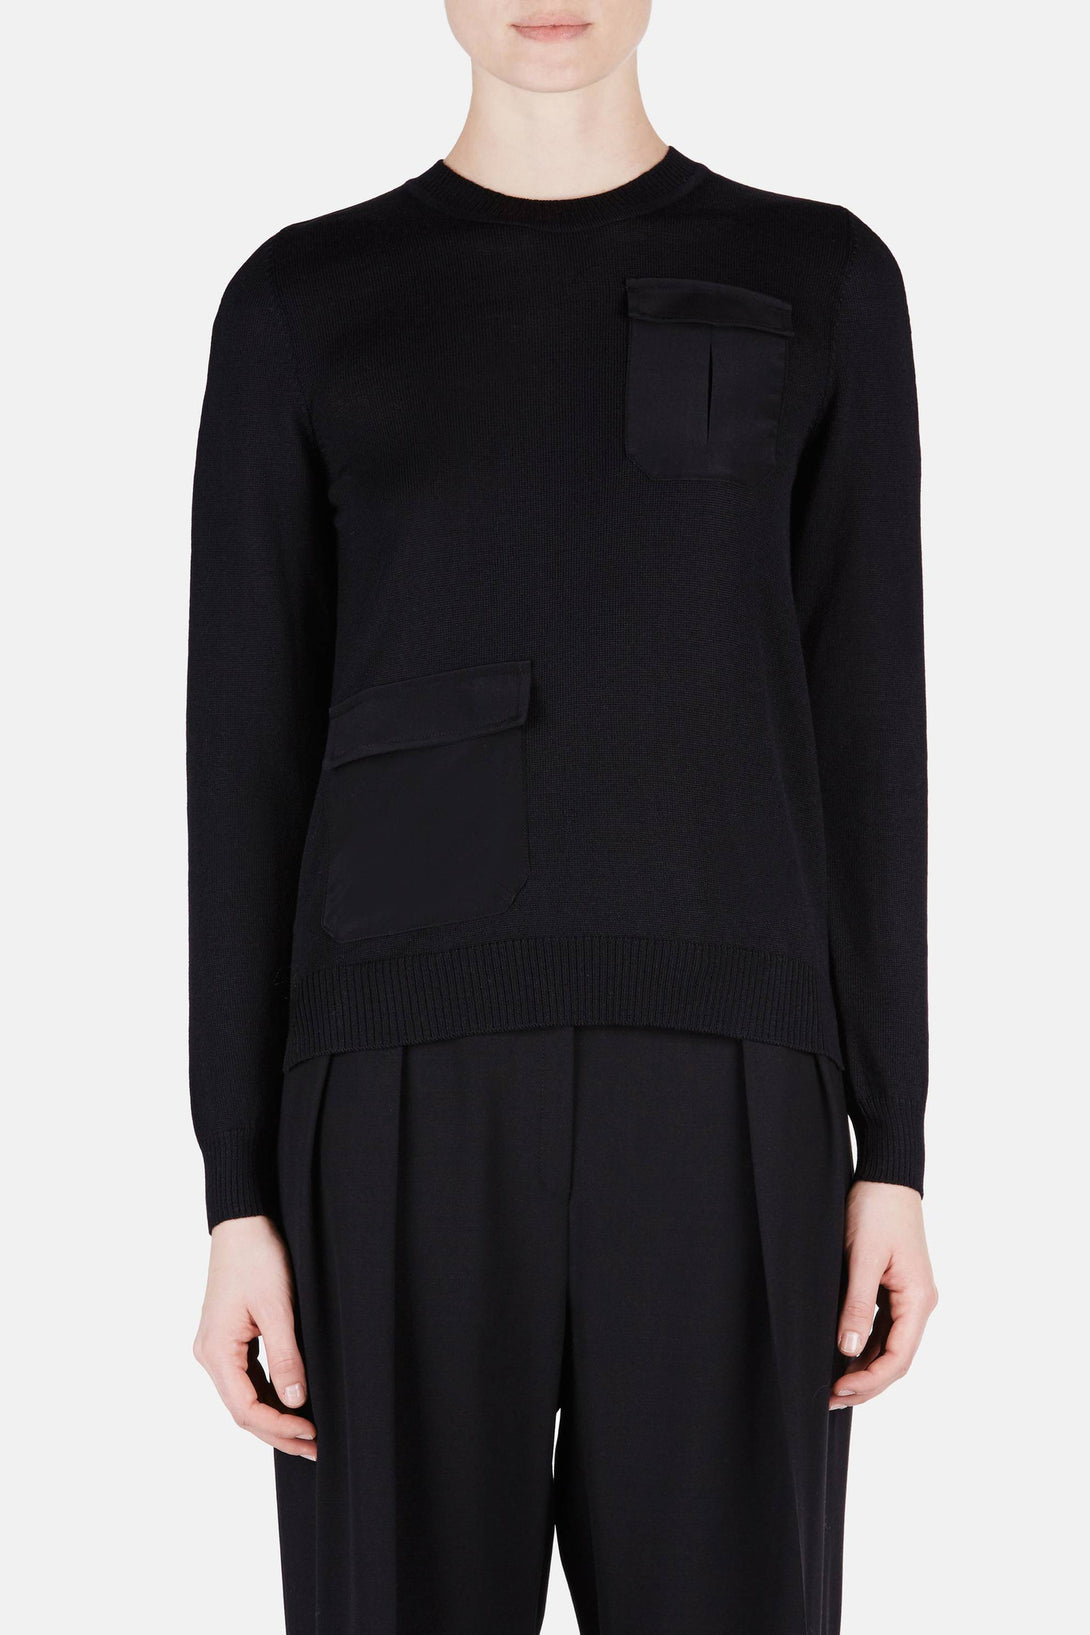 Radley Sweater - Black